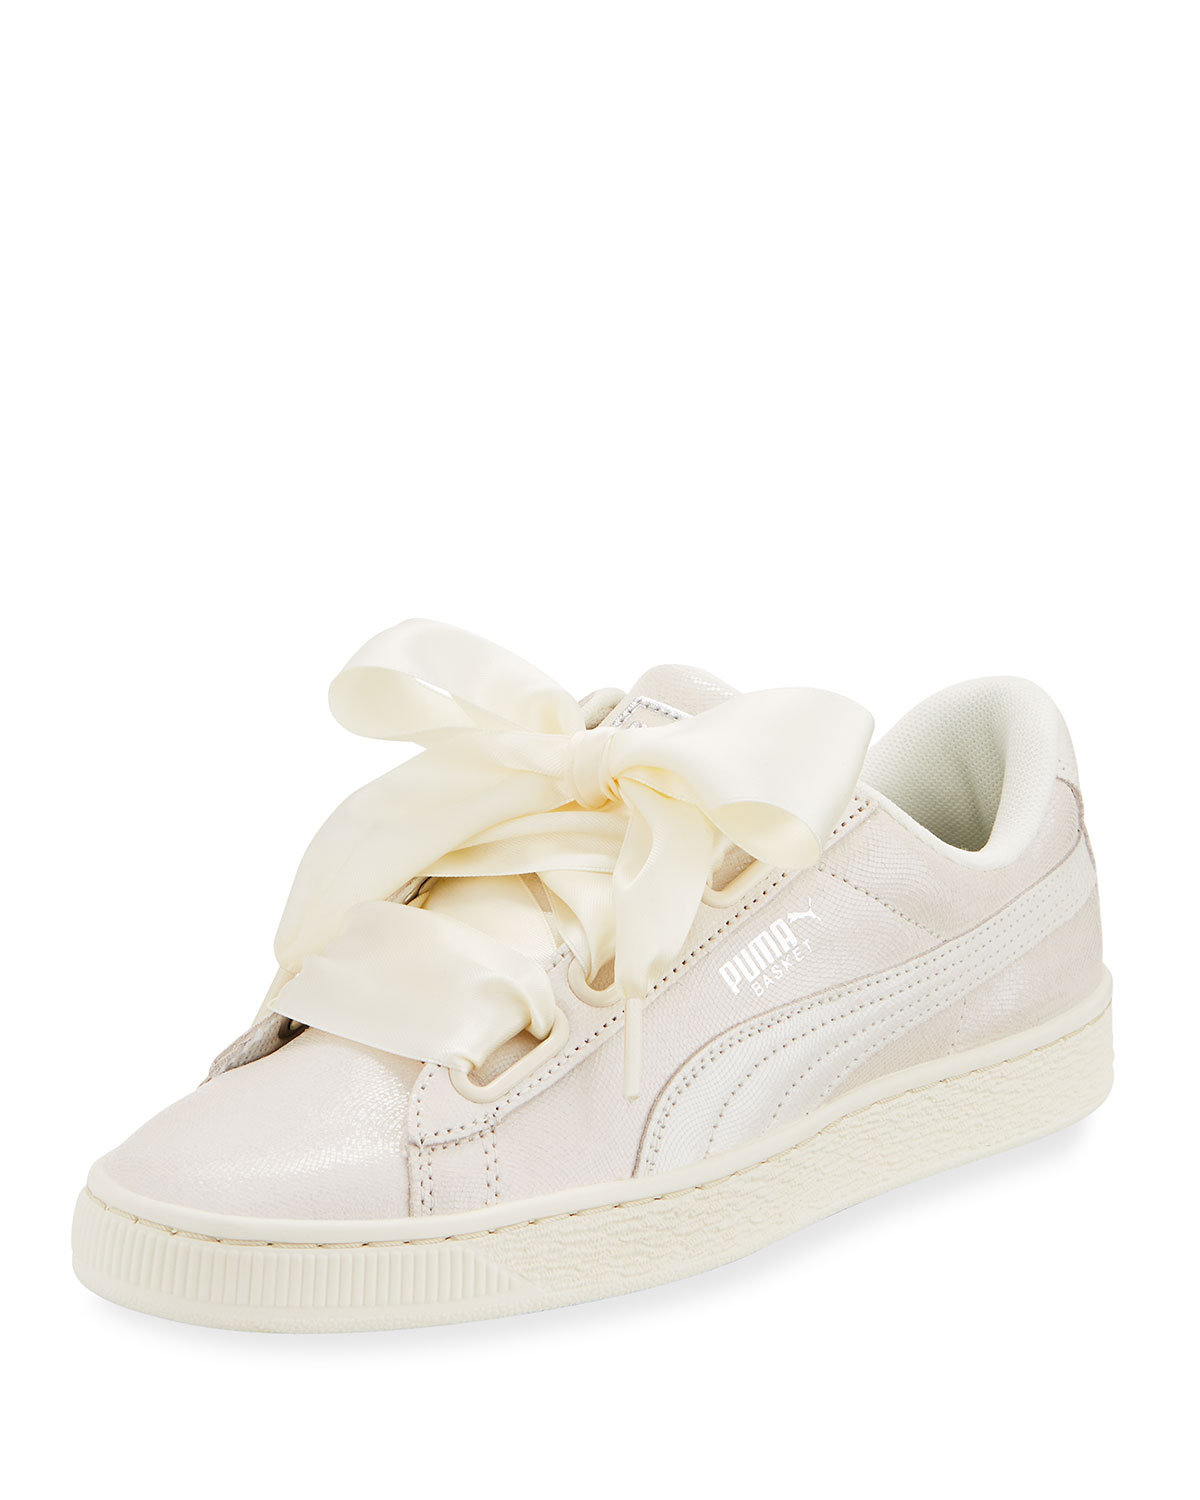 7b0e6f977b19 Puma Basket Heart Lace-Up Sneaker